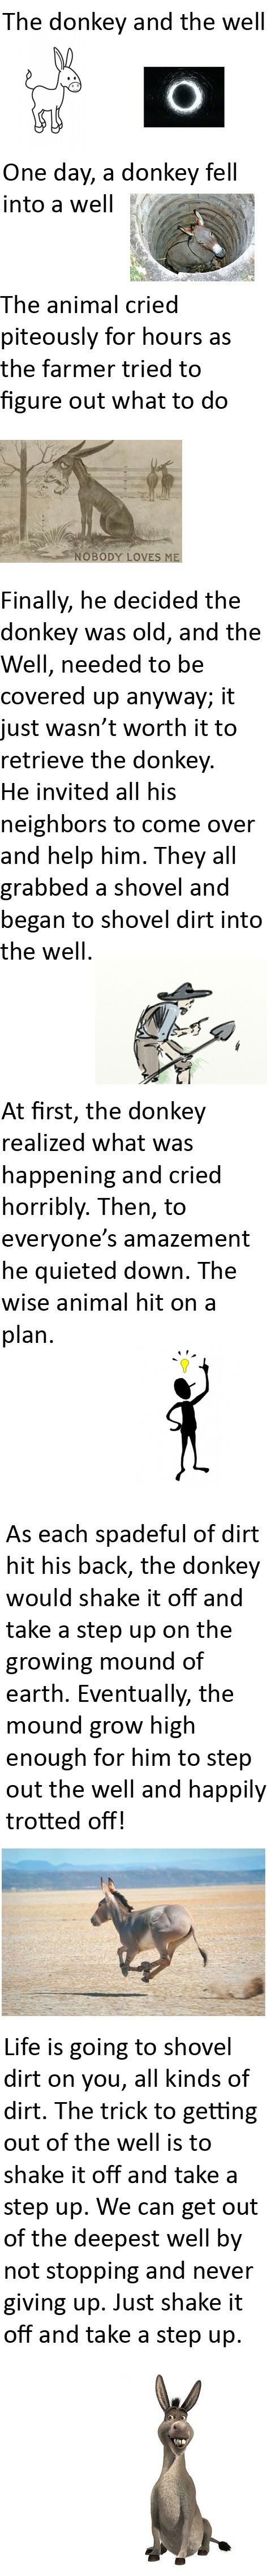 I love this story :)